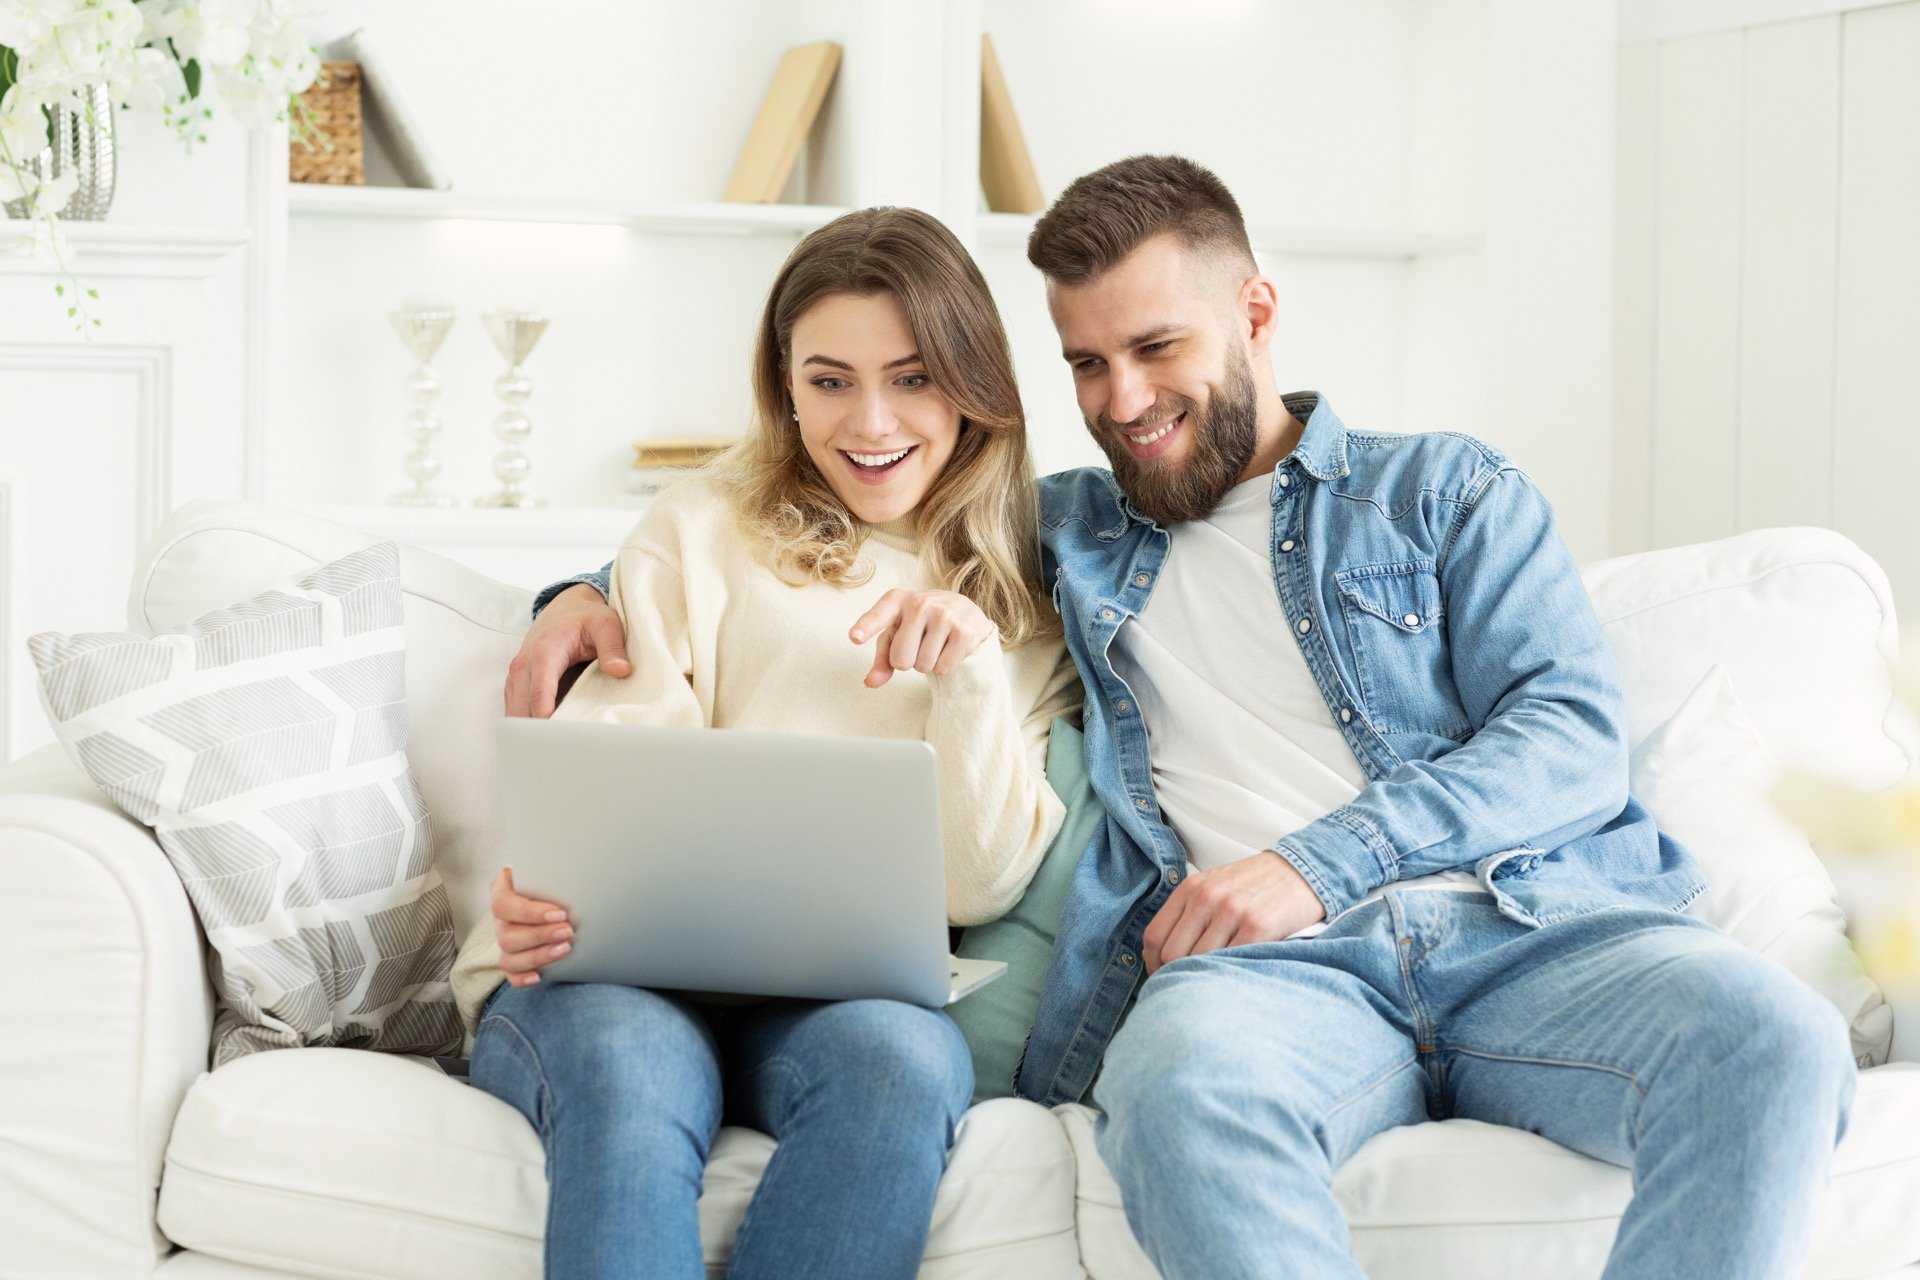 Couple buying new home from laptop